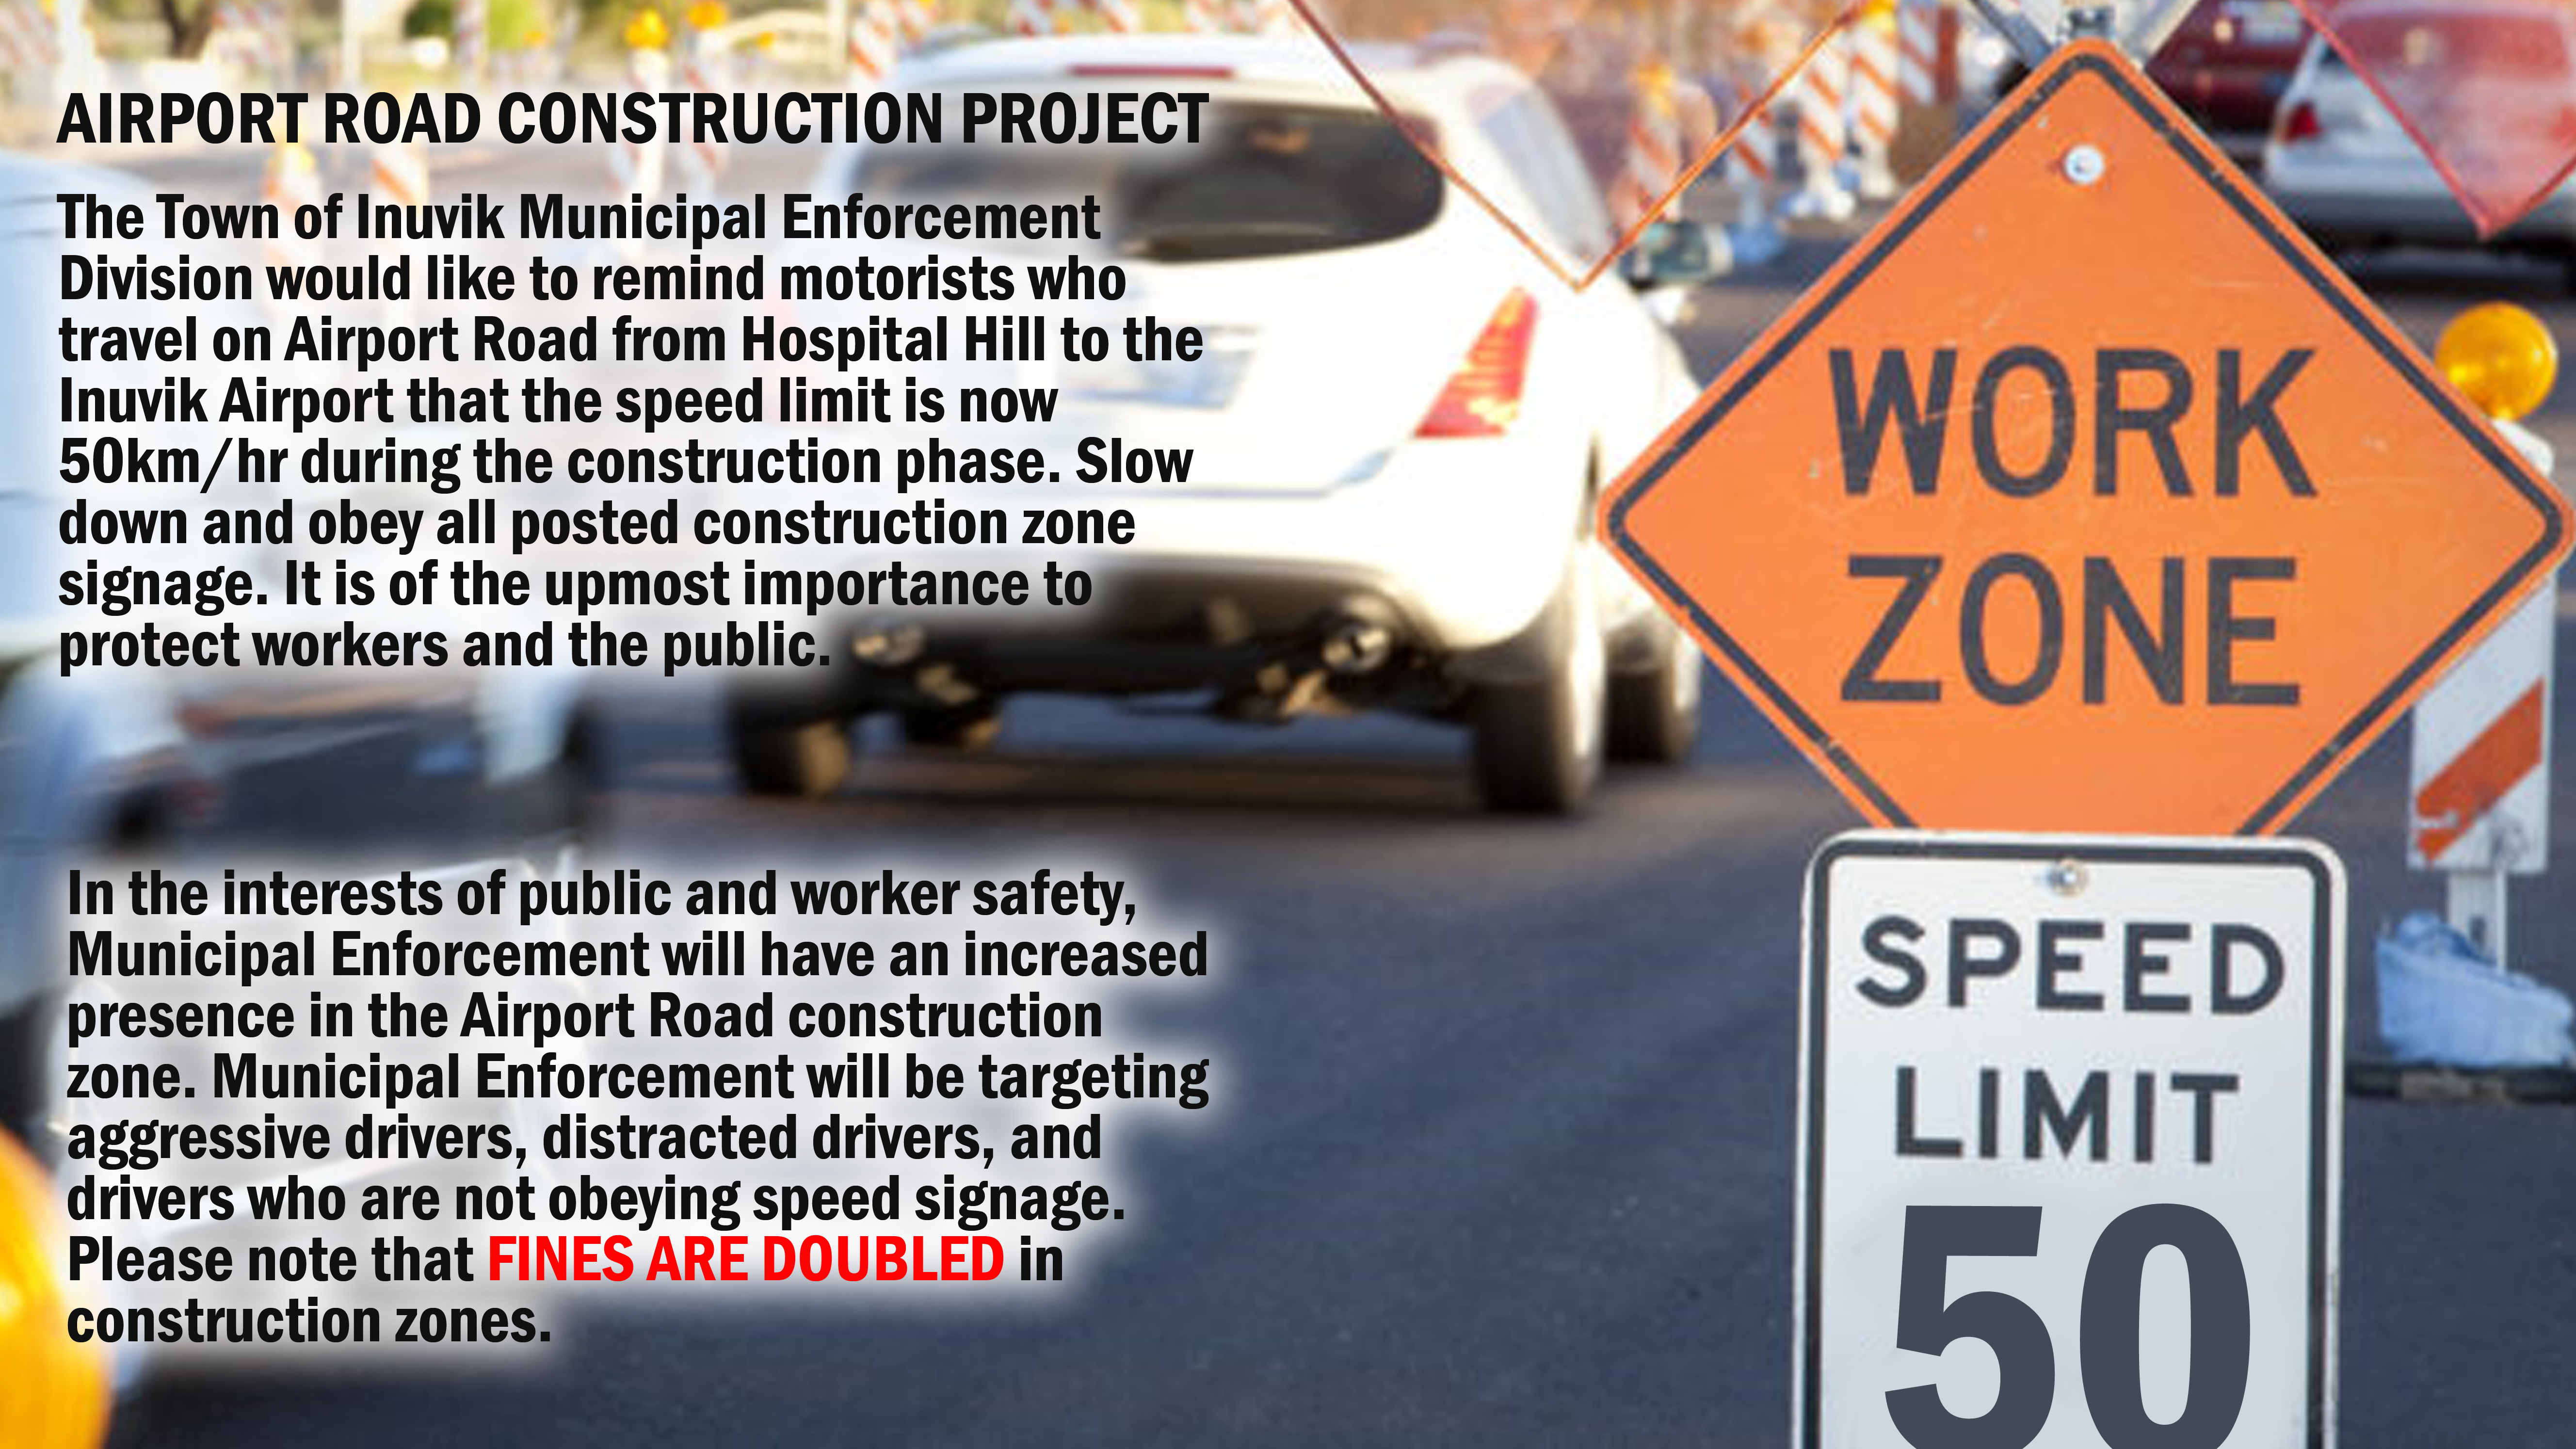 AIRPORT ROAD CONSTRUCTION PROJECT